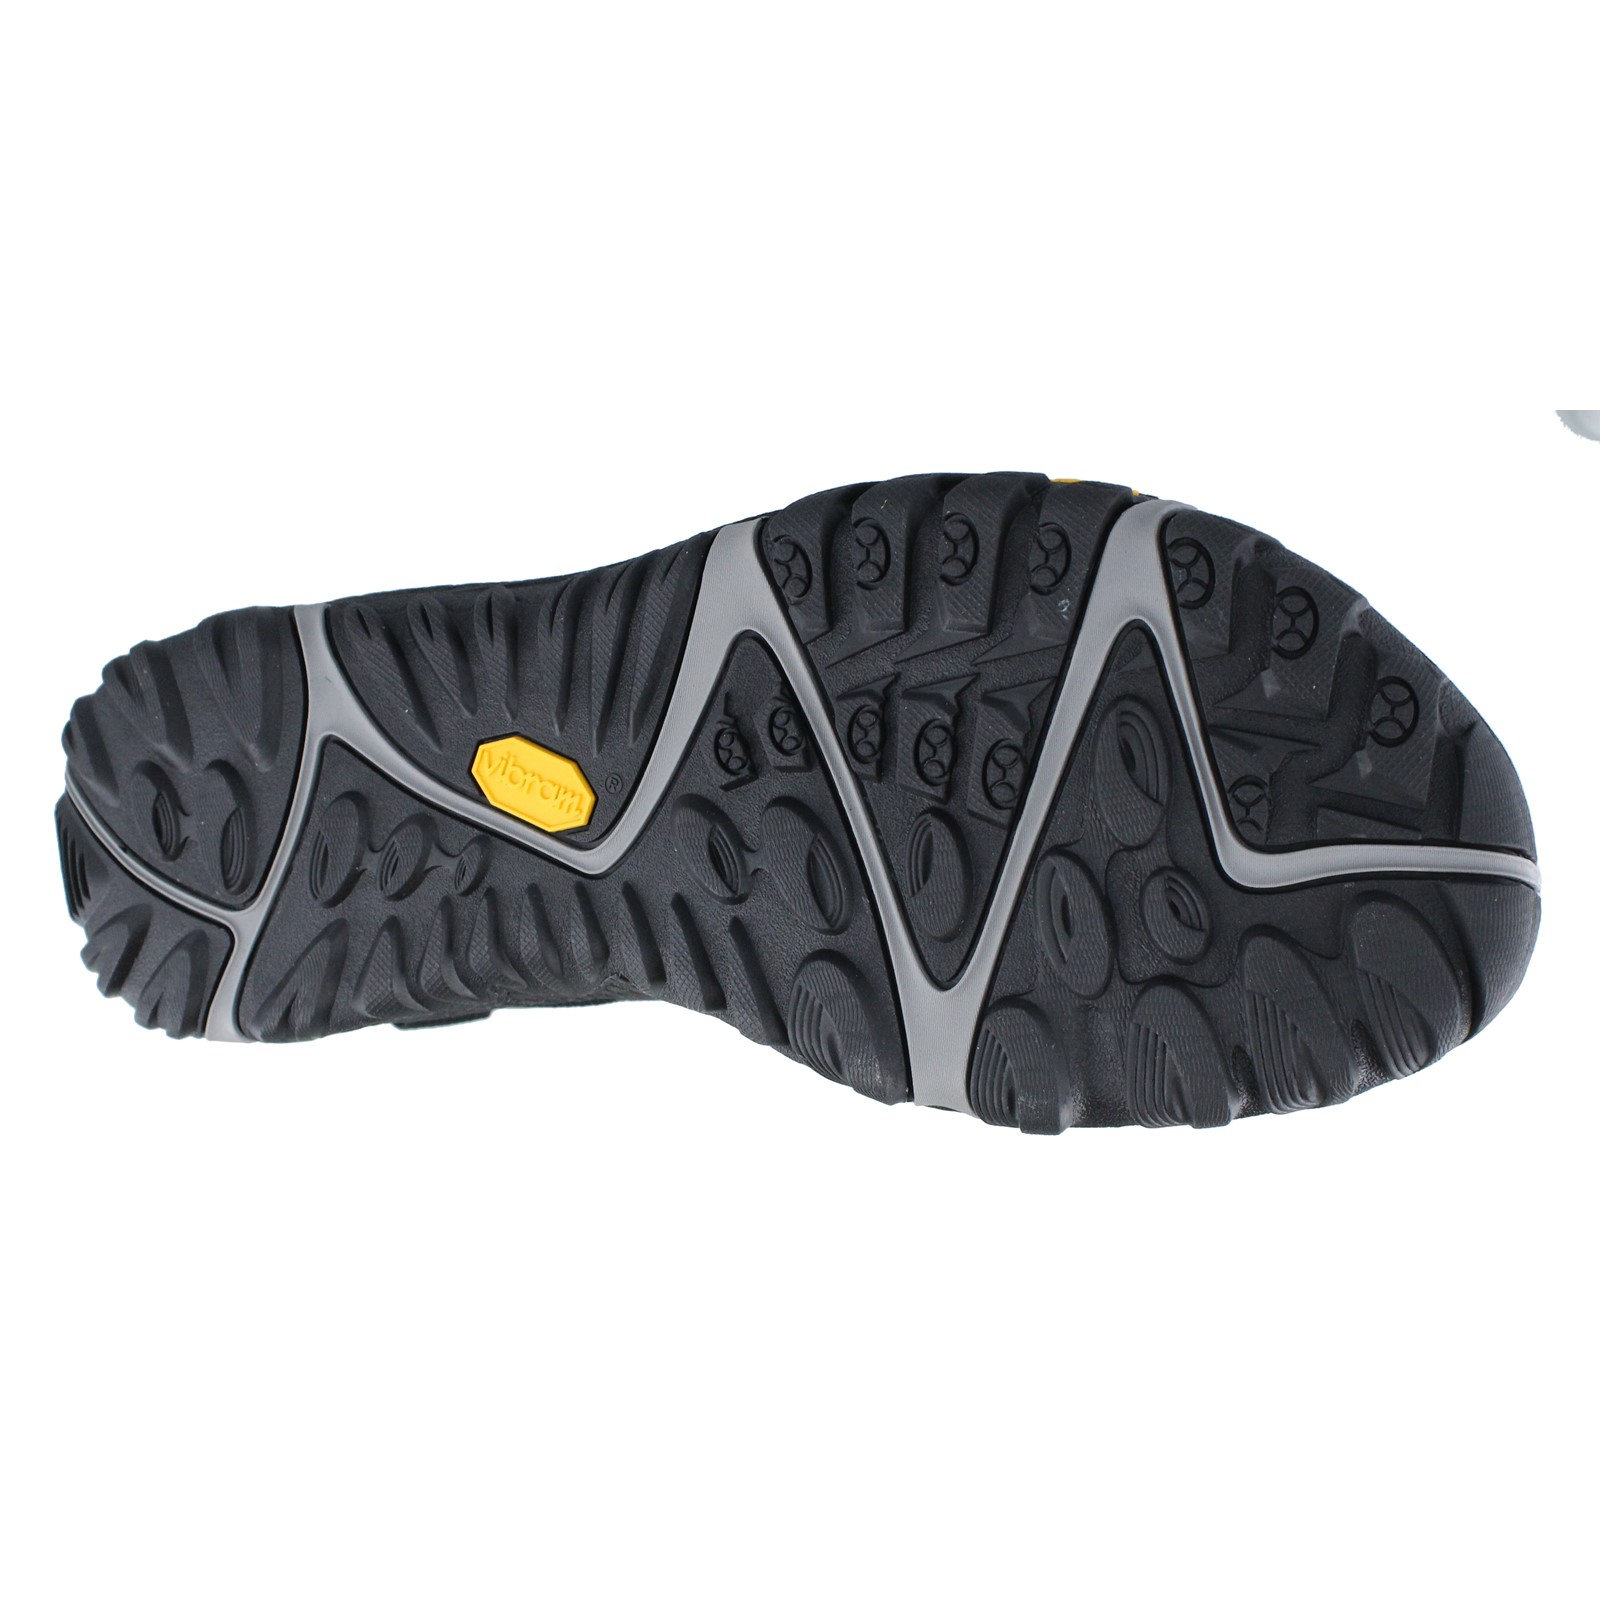 9cdb8160d14 Home  Men s Merrell